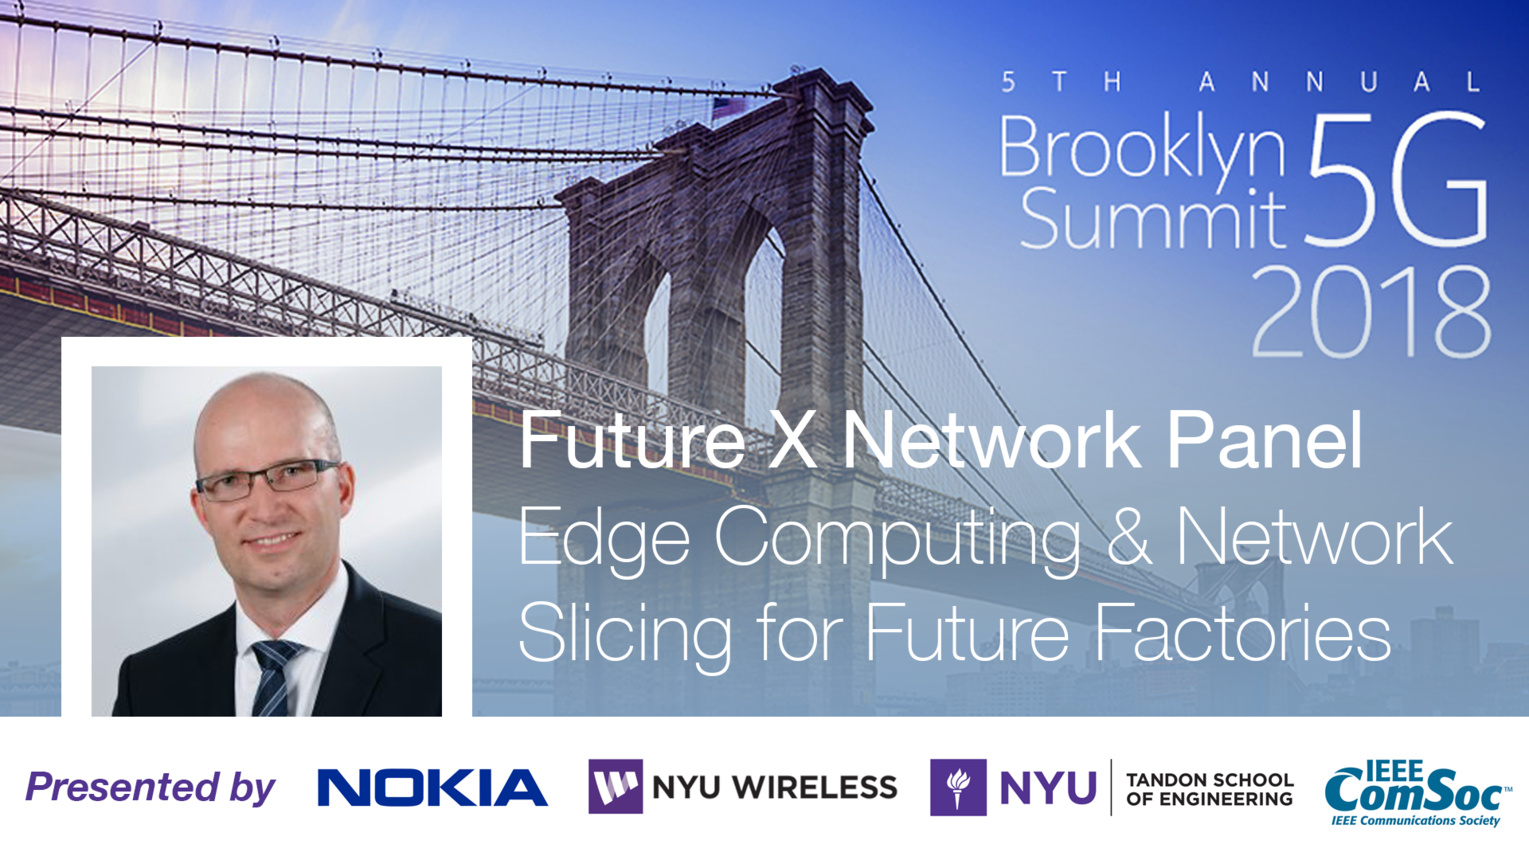 Edge Computing and Network Slicing for the Factories of the Future - Future X Network Panel Talk - Andreas Mueller - Brooklyn 5G Summit 2018